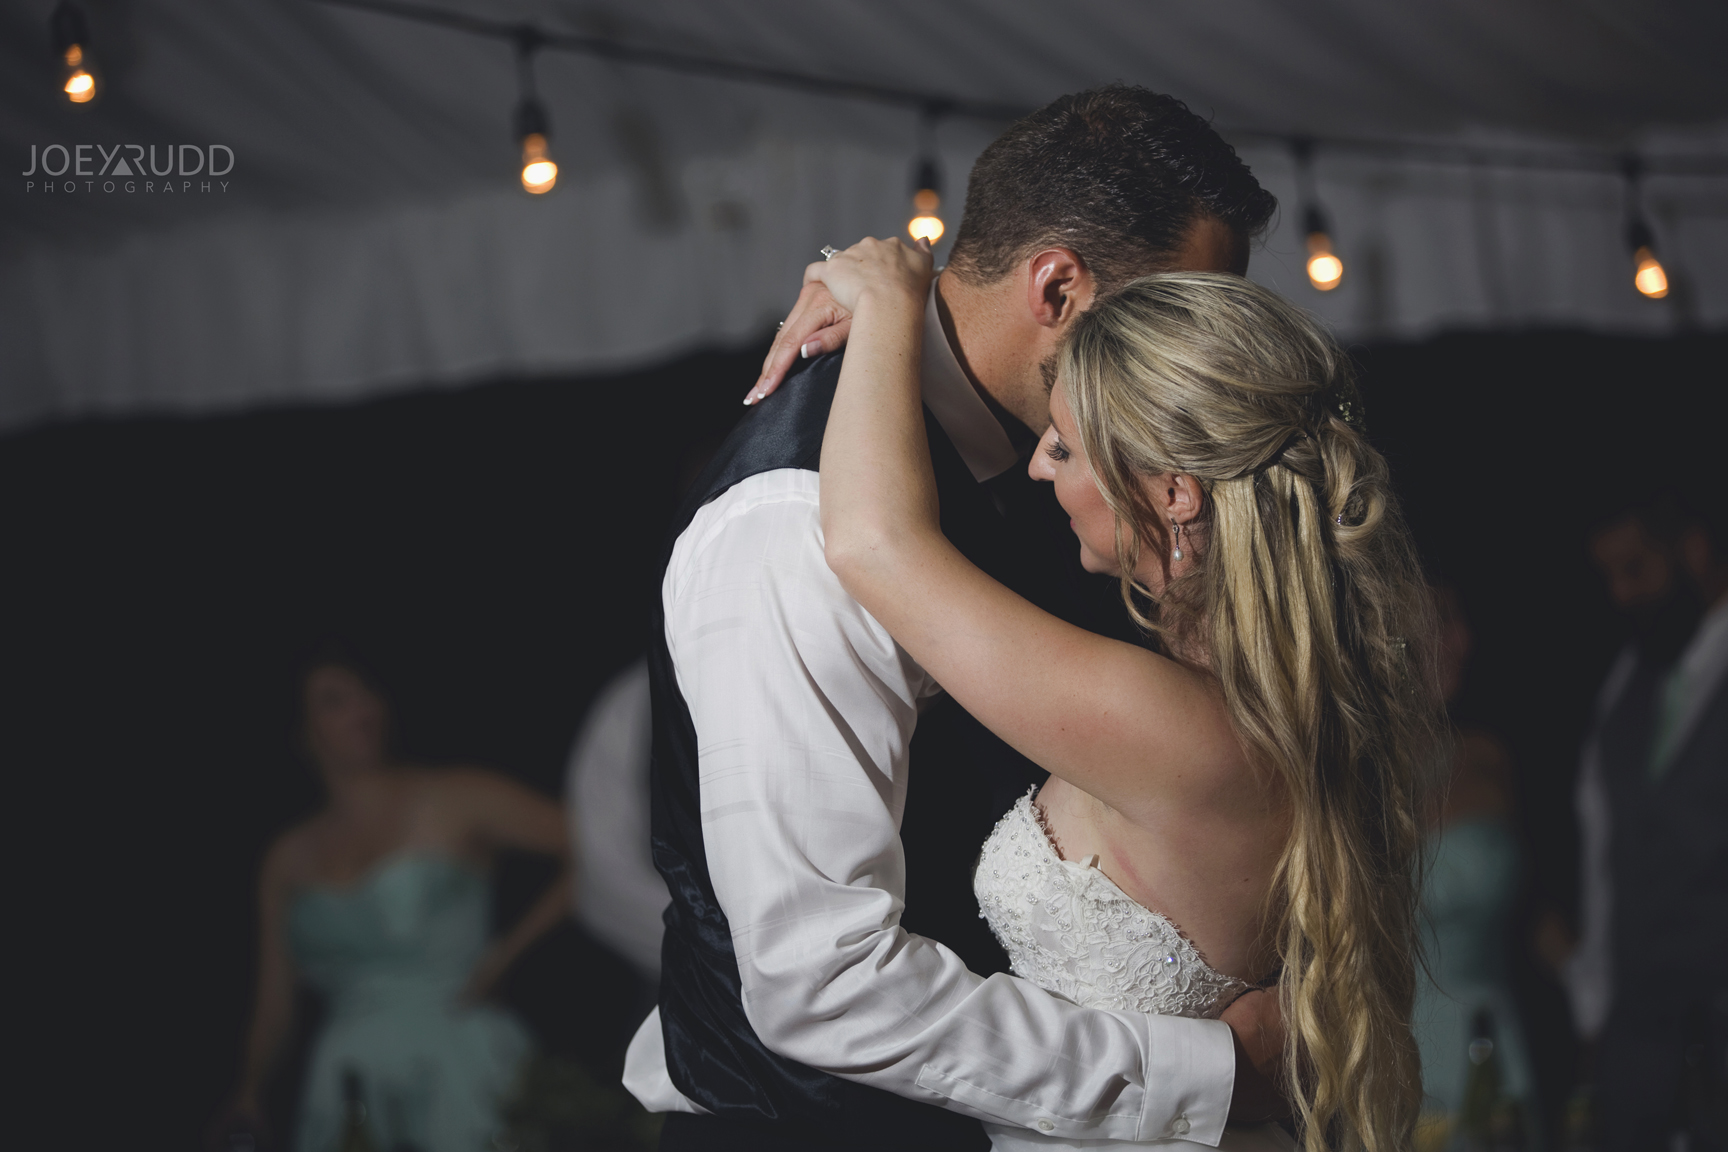 Calabogie Wedding at Barnet Park by Ottawa Wedding Photographer Joey Rudd Photography Dancing Couple